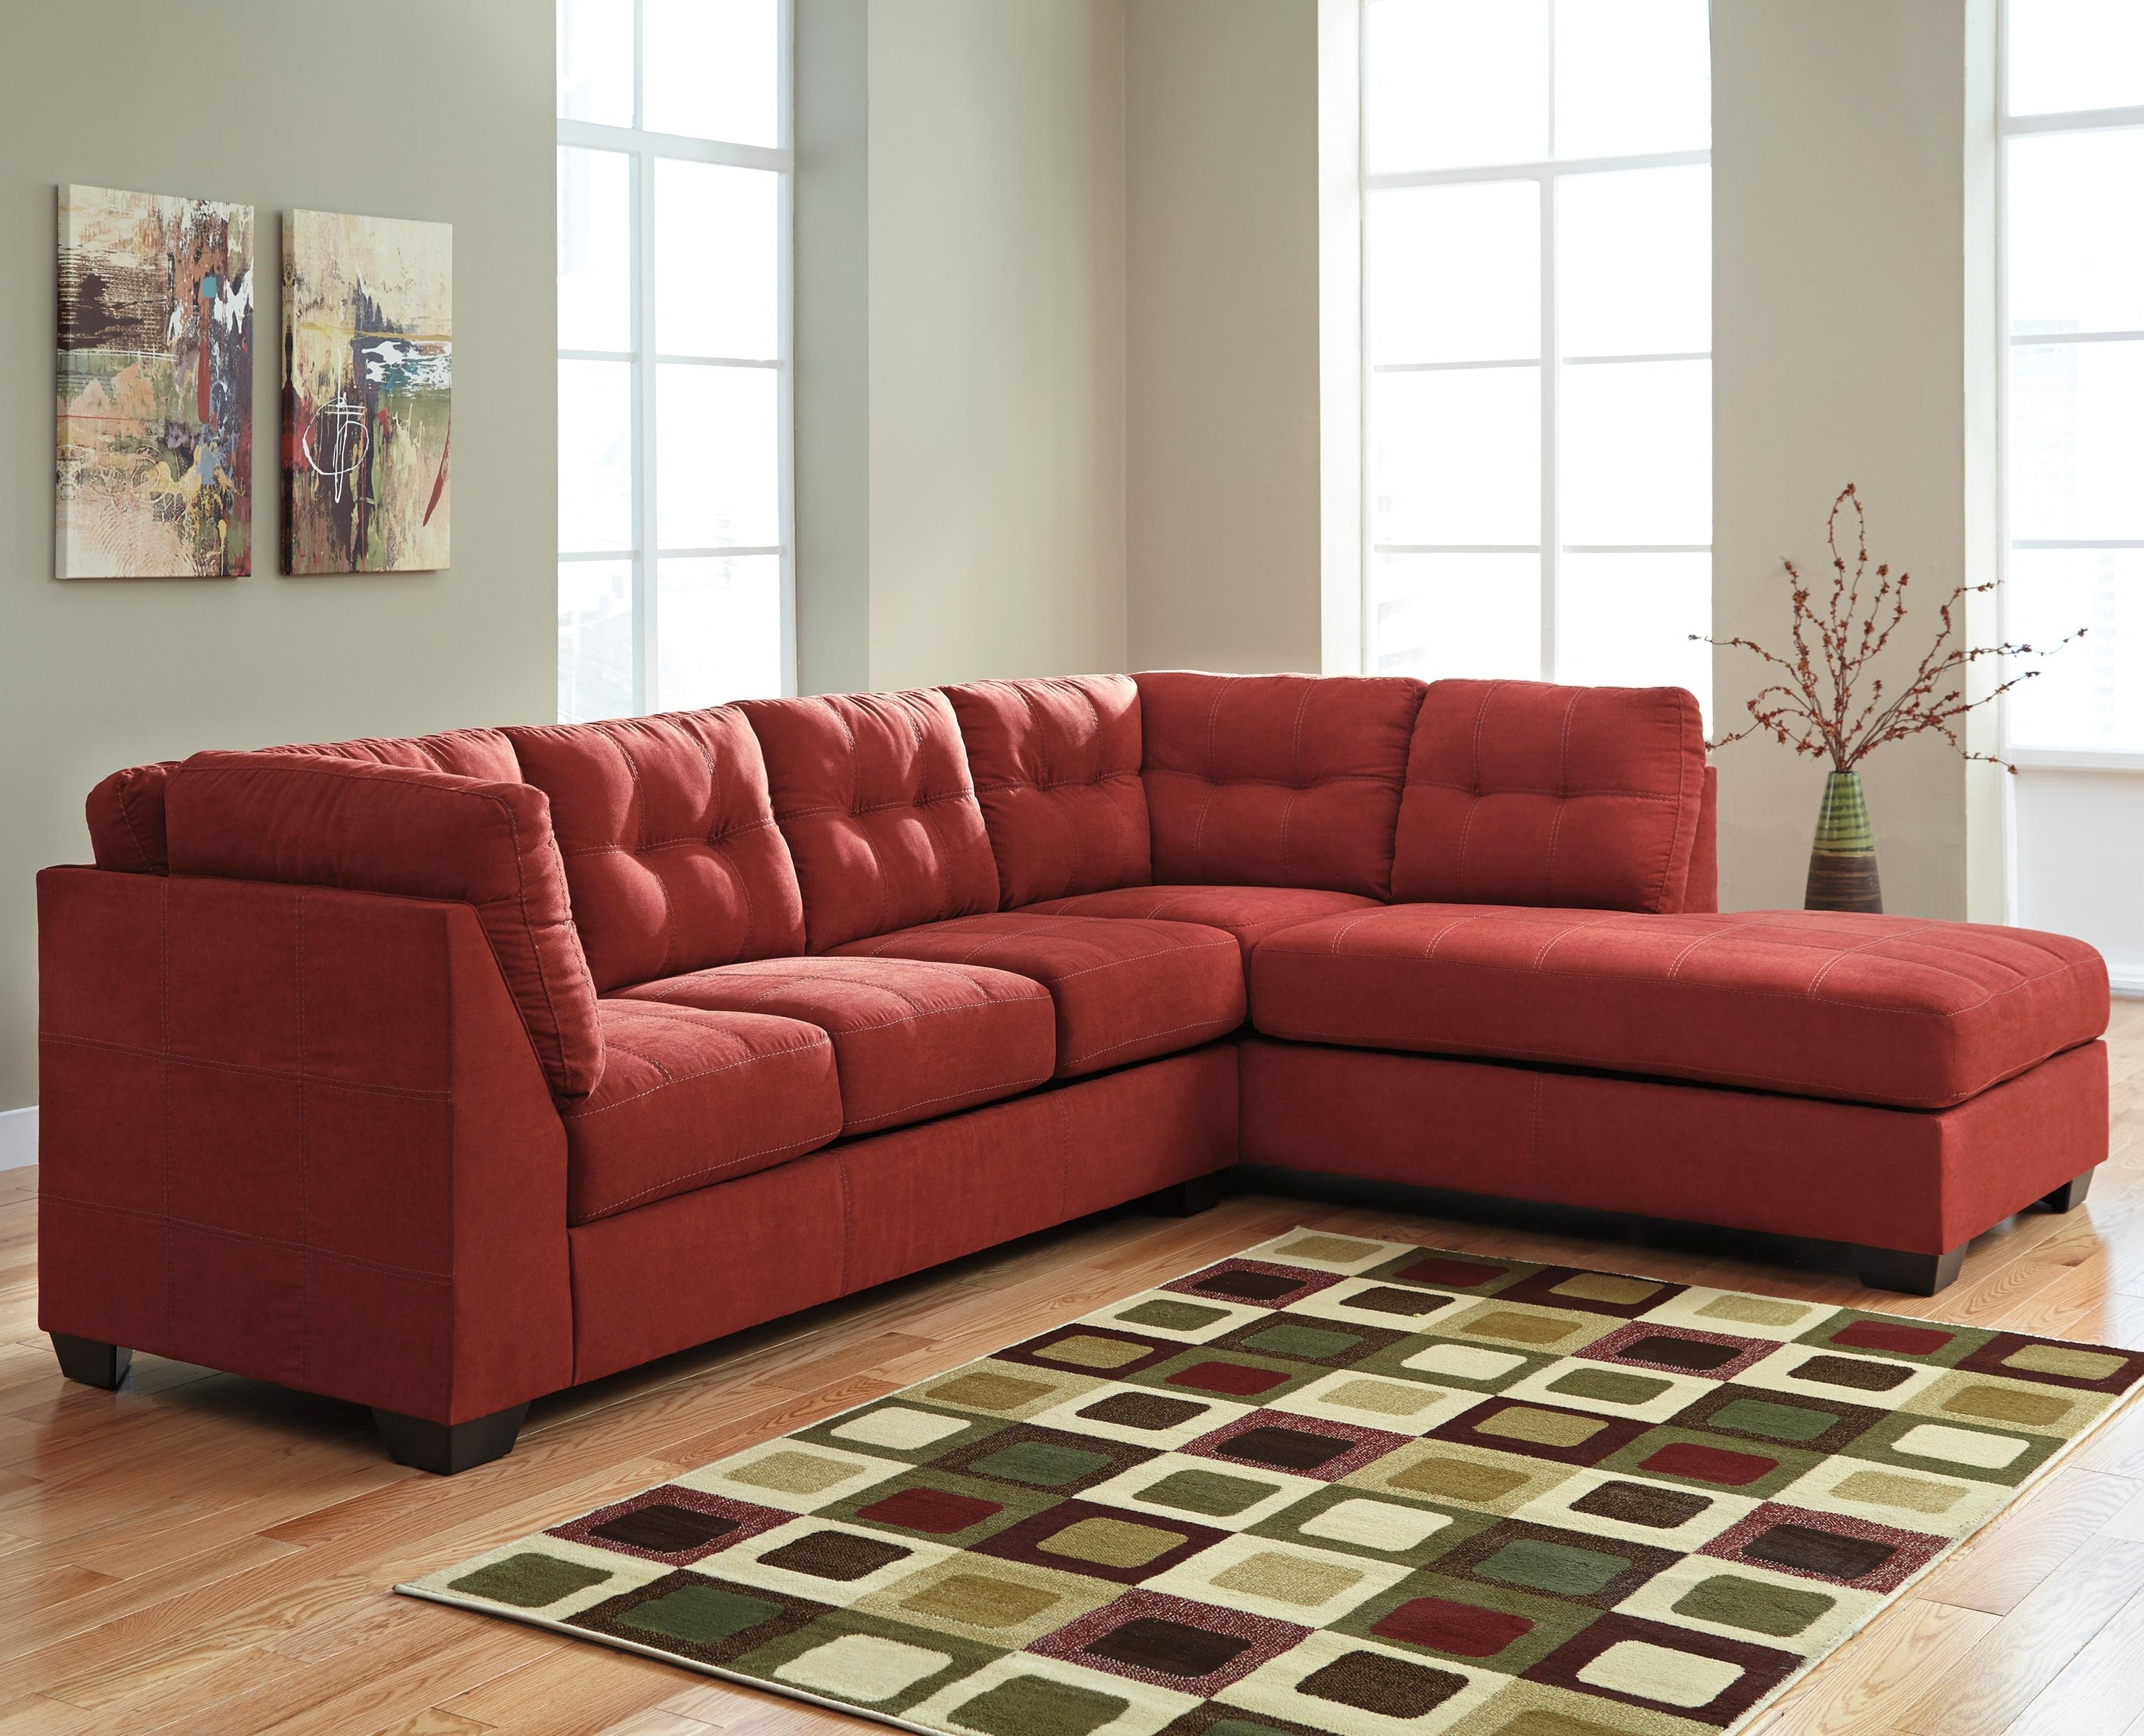 Widely Used Sectional Sofas With 2 Chaises For Benchcraft Maier – Sienna 2 Piece Sectional With Left Chaise (View 20 of 20)